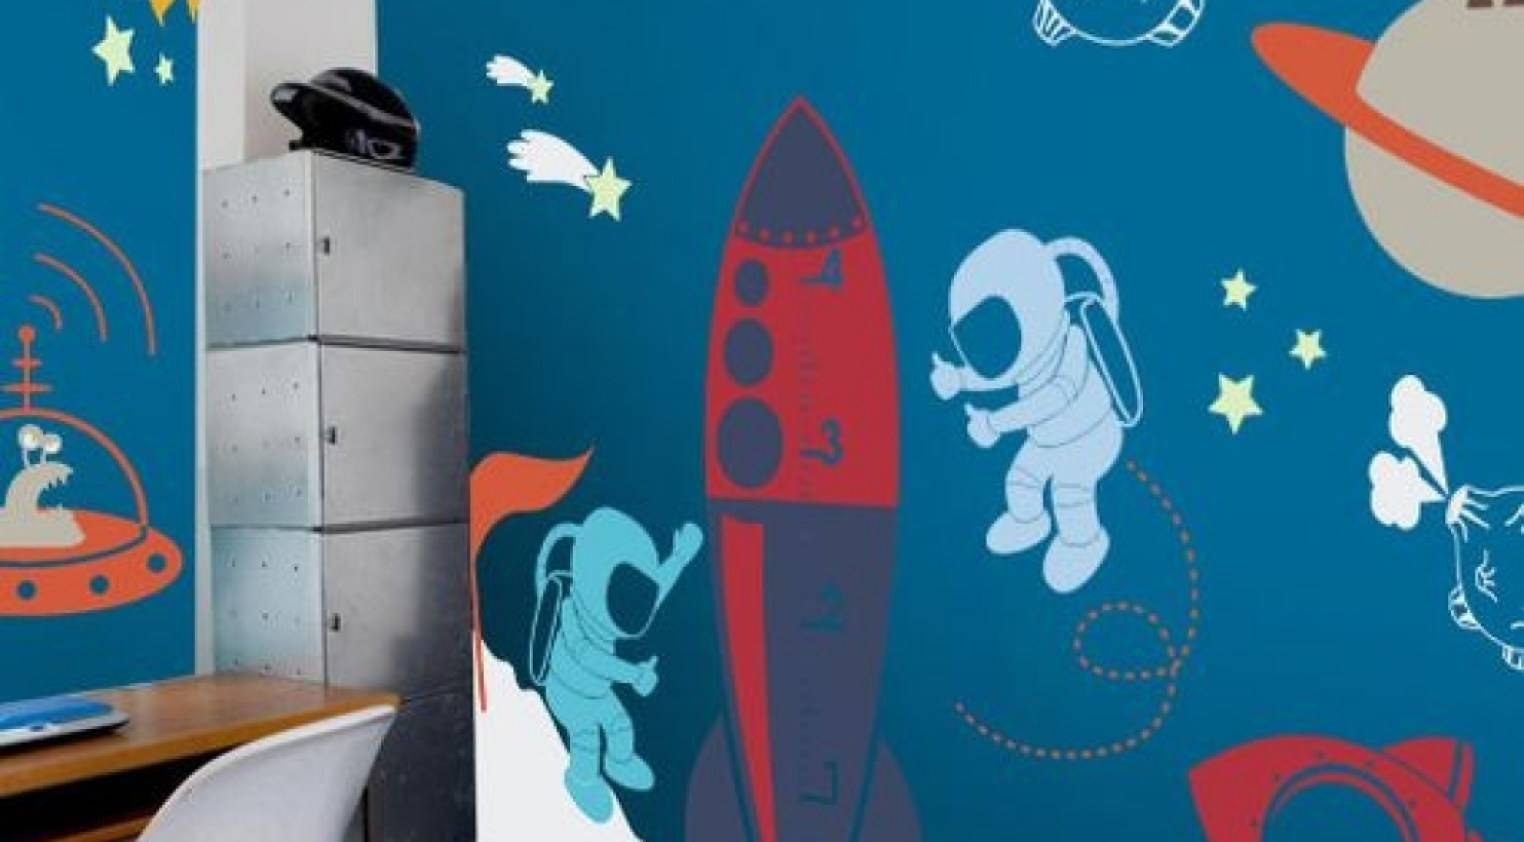 Mural : Amazing Outer Space Wall Mural Solar System With Space Intended For Most Recently Released 3d Solar System Wall Art Decor (View 10 of 20)